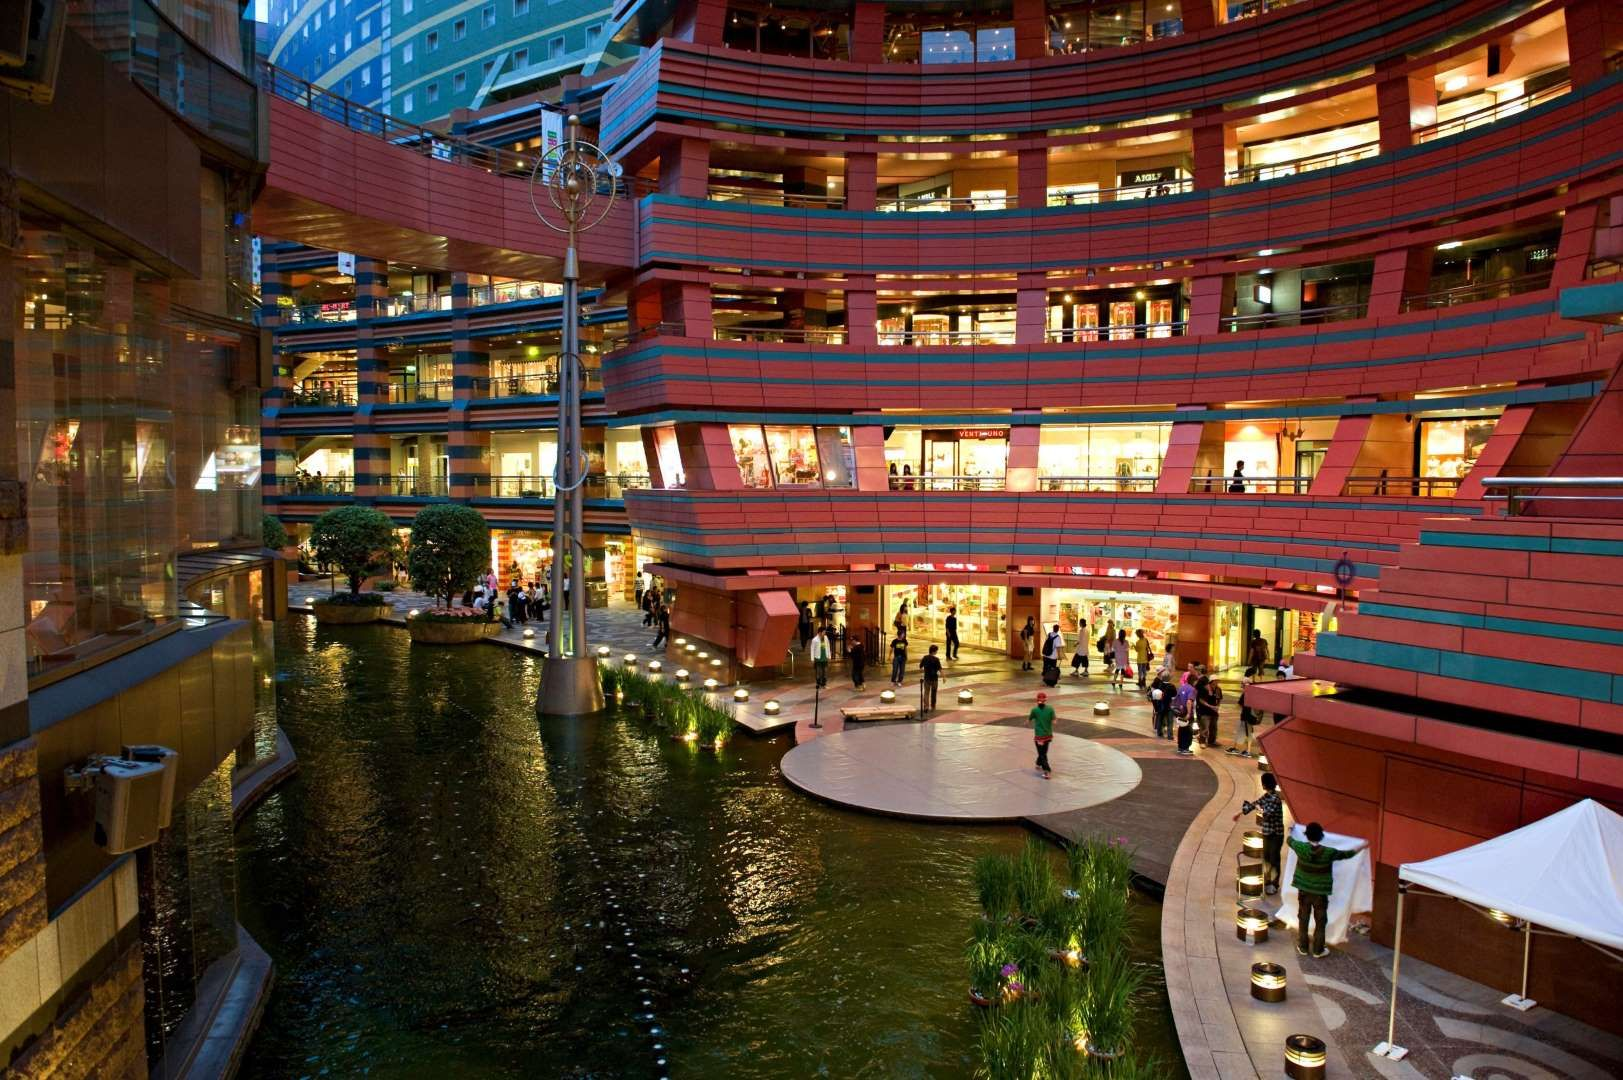 FUKUOKA CITY, FUKUOKA PREFECTURE, JAPAN - 2008/06/01: View of Canal City in Hakata district, the biggest shopping mall in Fukuoka City, built around an artificial canal running off the Naka river.. (Photo by Rio Helmi/LightRocket via Getty Images)